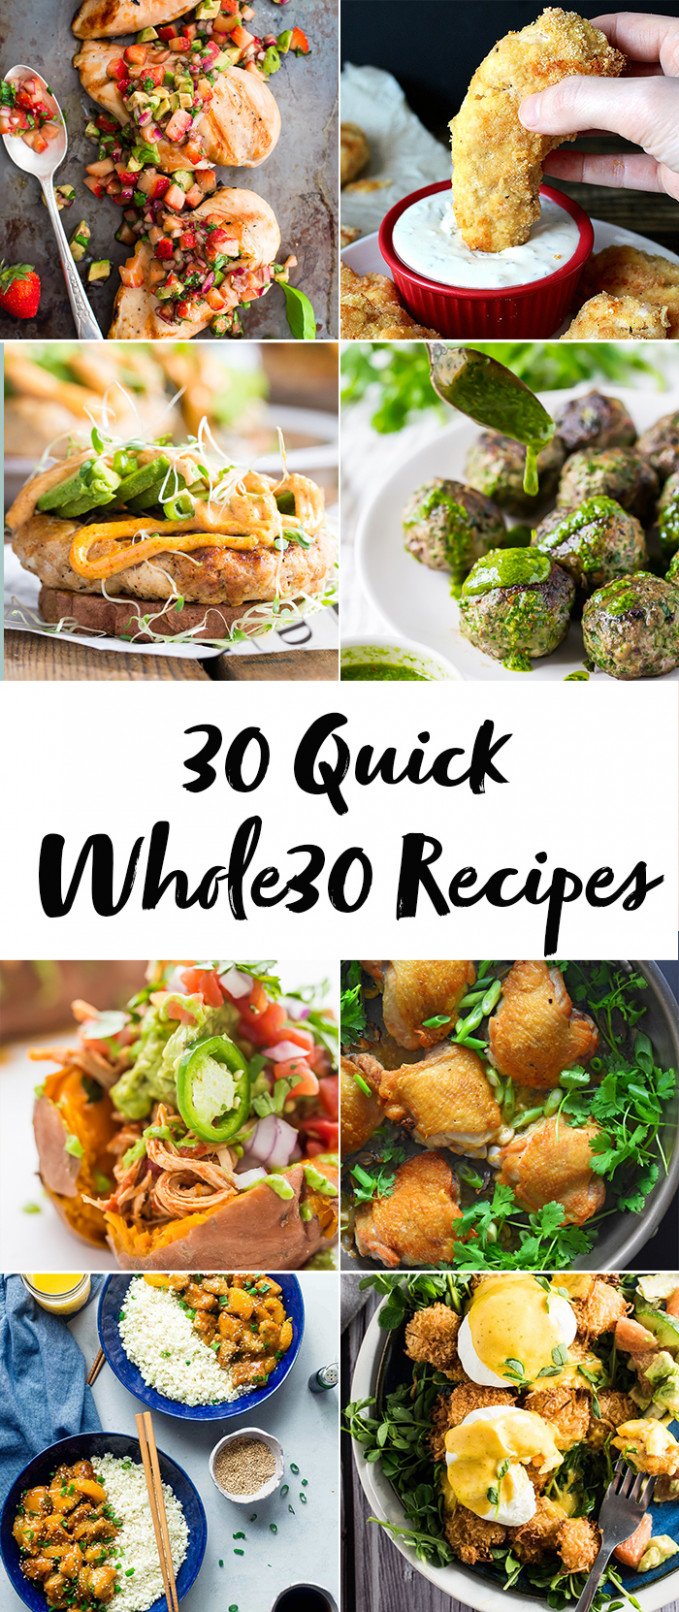 30 Quick Whole30 Recipes (Whole30 Dinner Recipes)